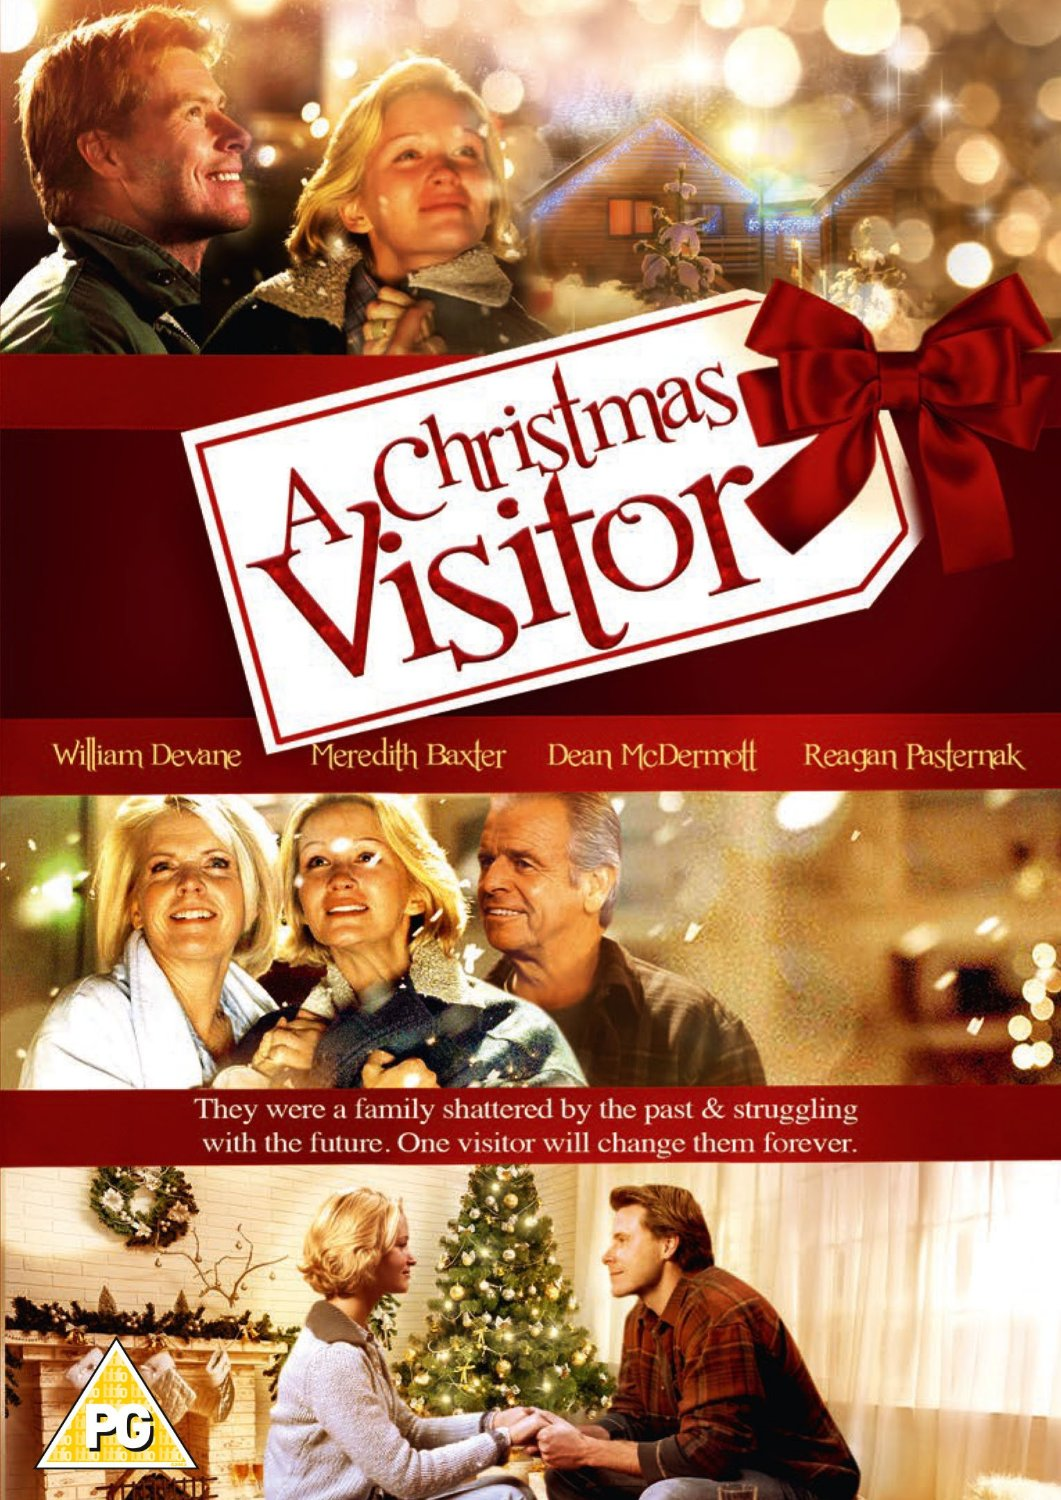 The Christmas Miracle Of Jonathan Toomey streaming full movie with english subtitles